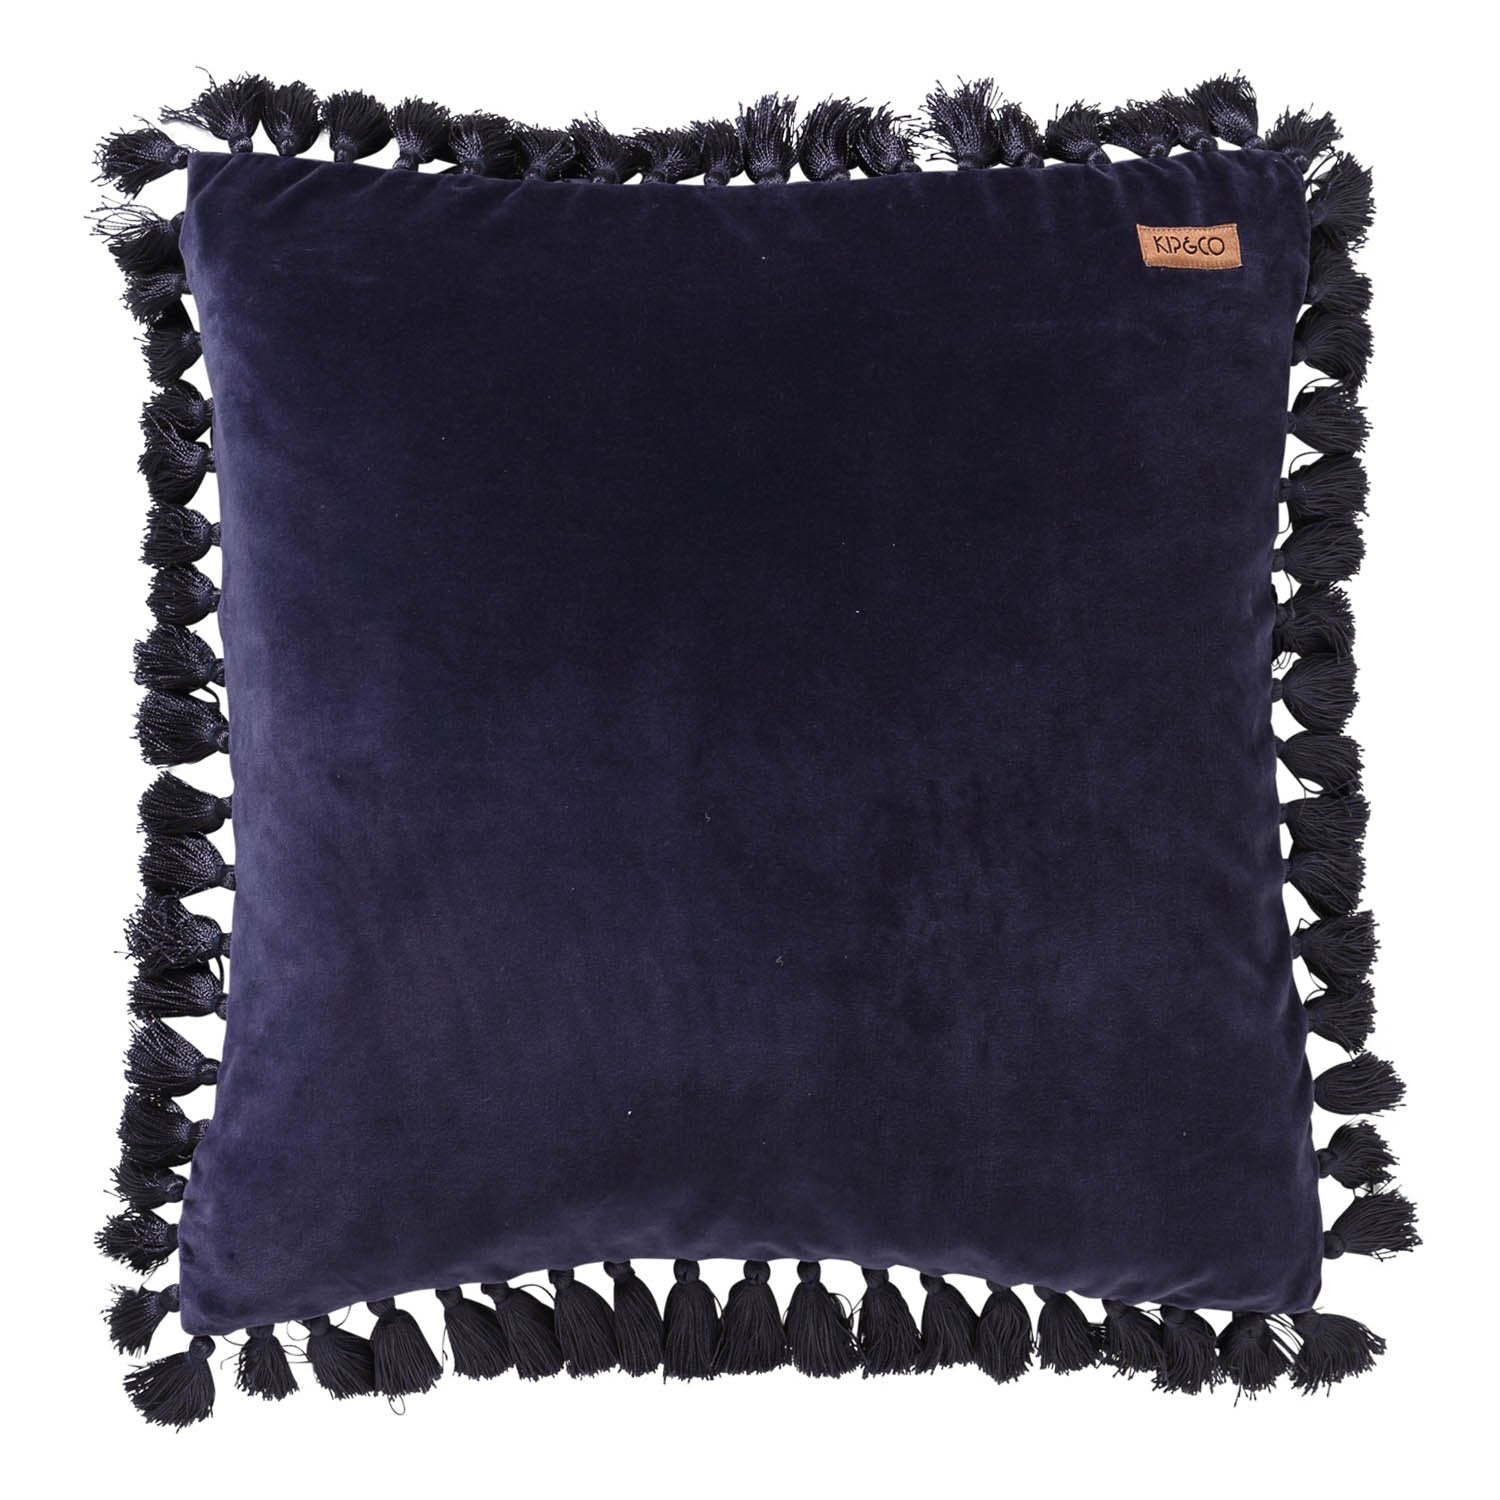 Kip & Co Navy Velvet Tassel Cushion - The Artisan Storeroom